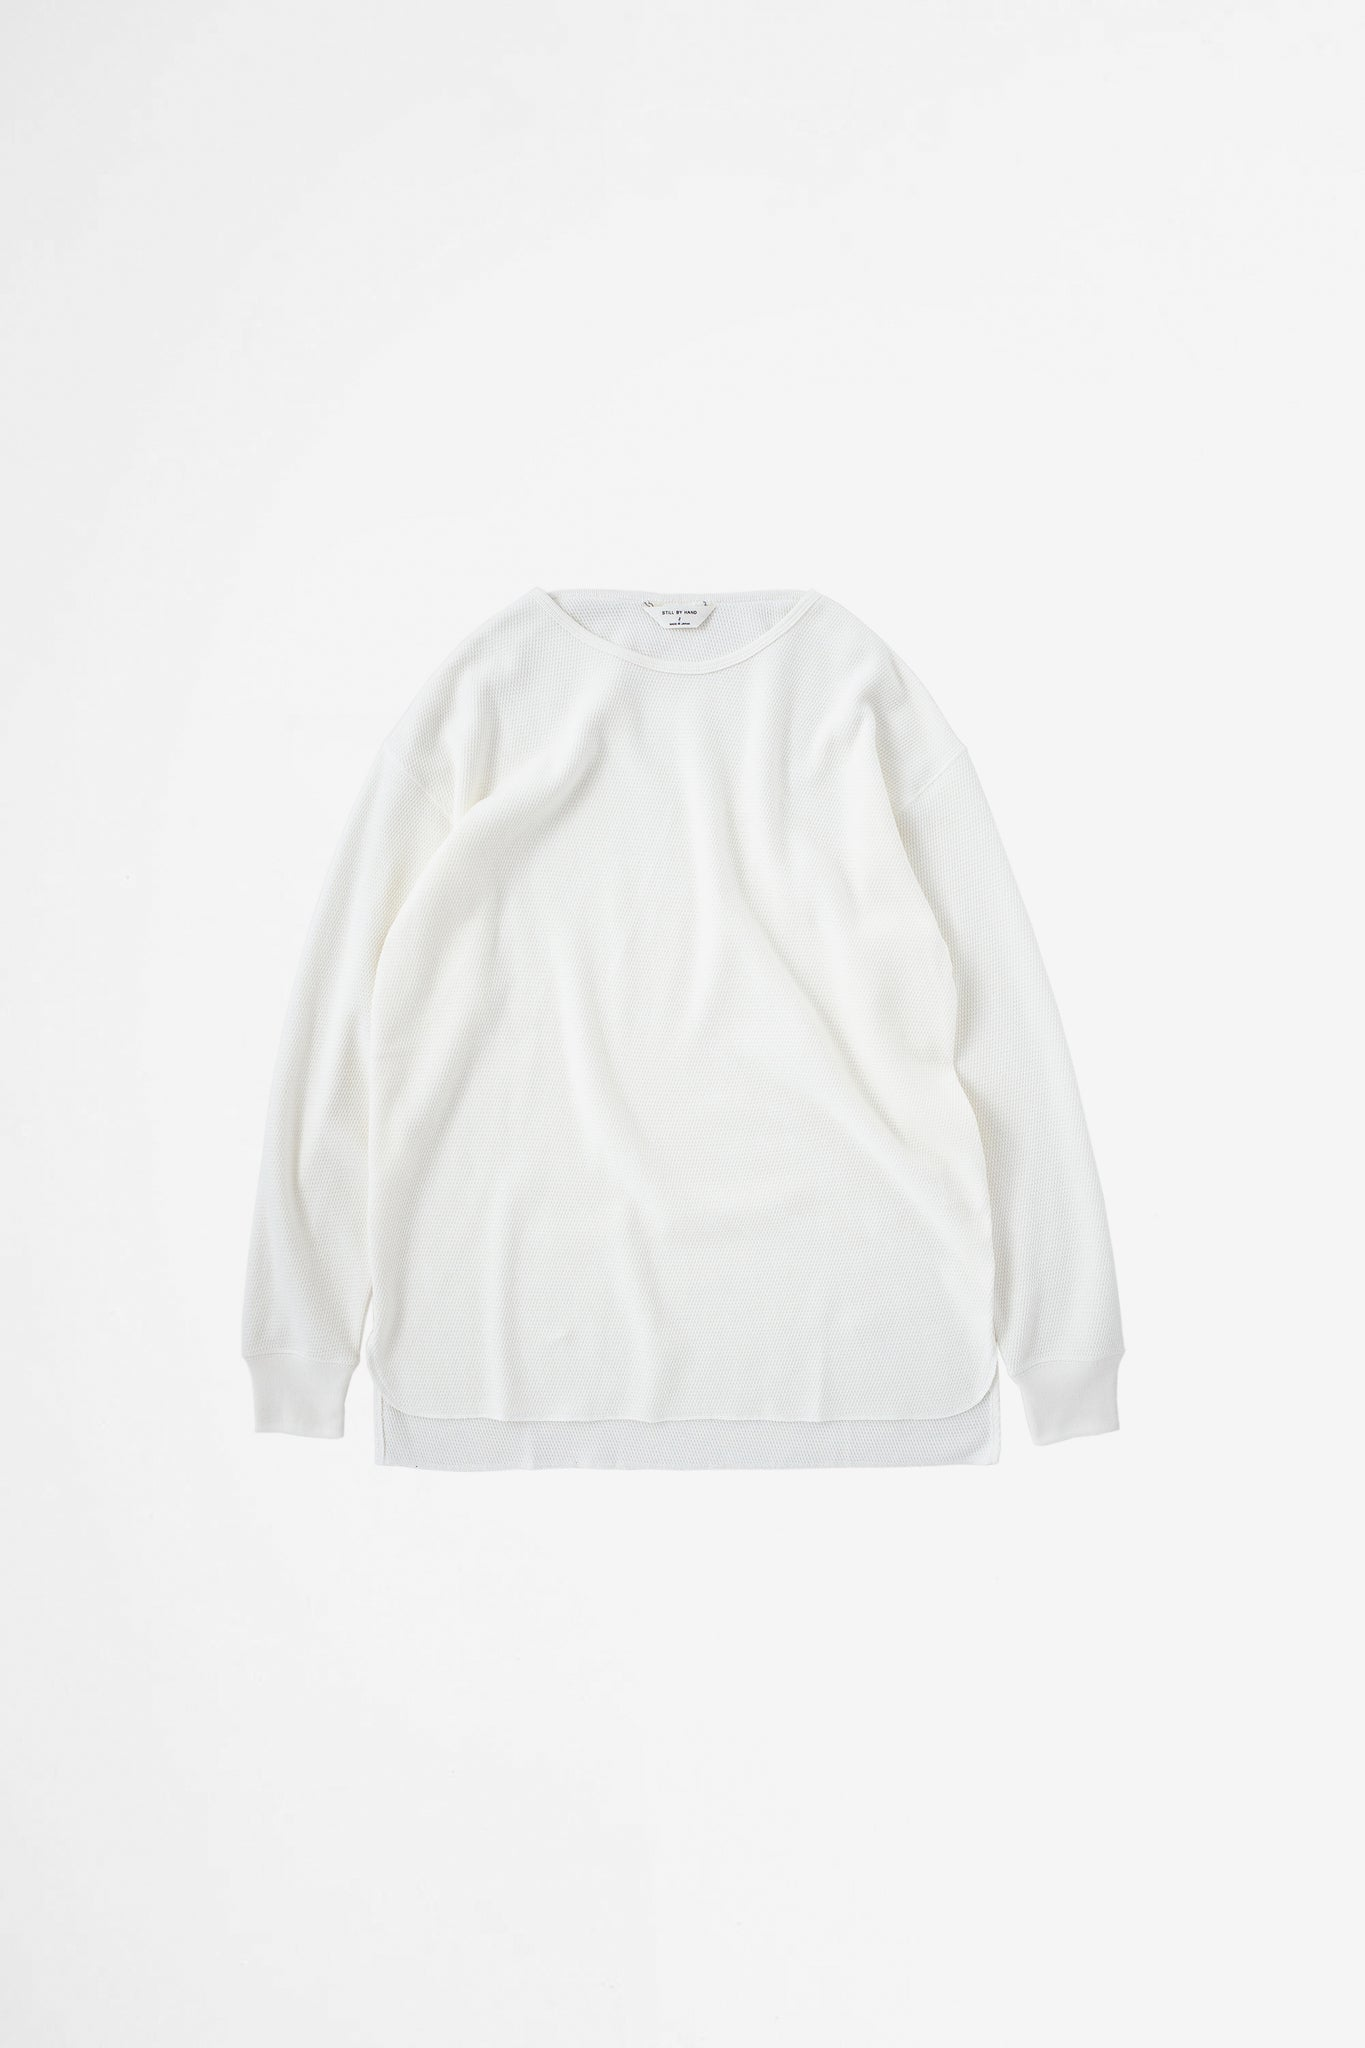 Thermal long sleeve white